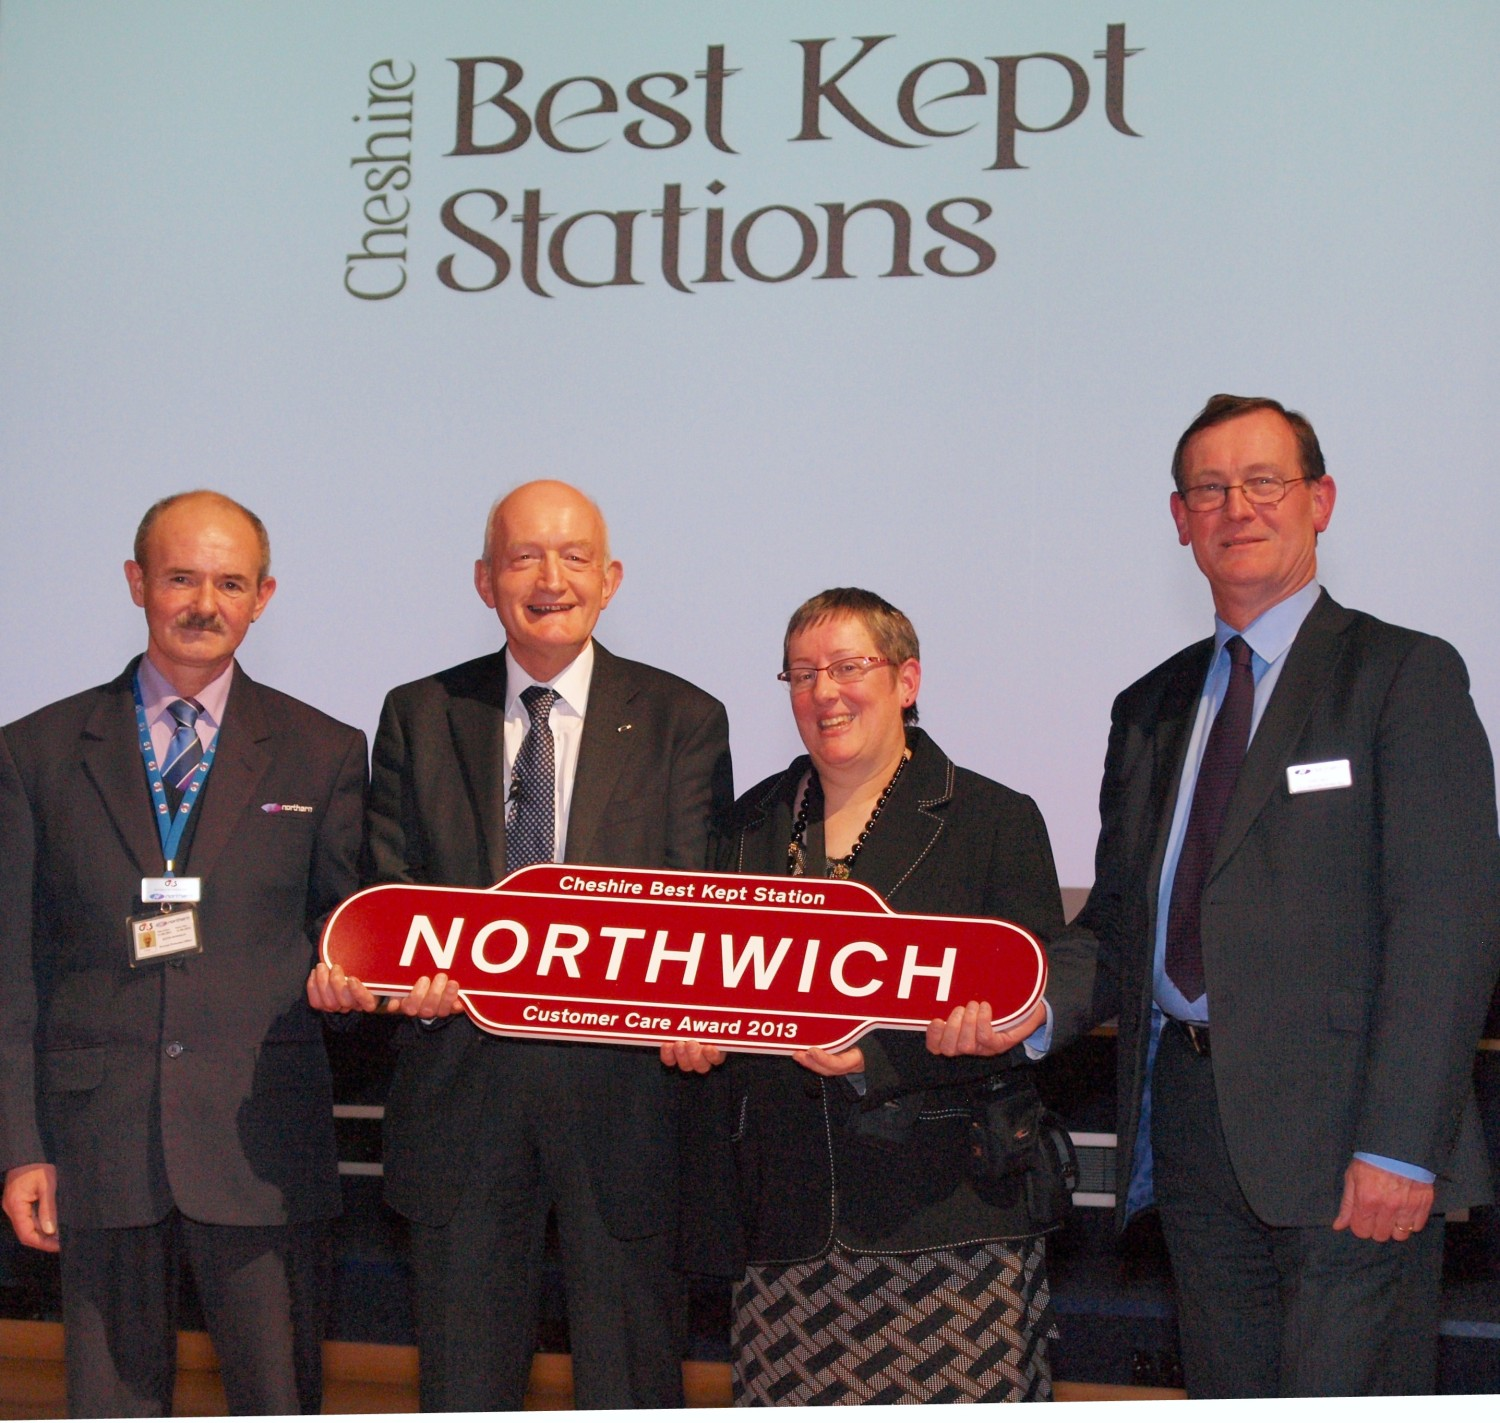 Kevin Howman, from Northern Rail, Mark Barker, formerly from Northern Rail, Sally Buttifant, community rail officer for the Mid Cheshire Line, and Don Jary, from Northern Rail, celebrate Northwich's success.